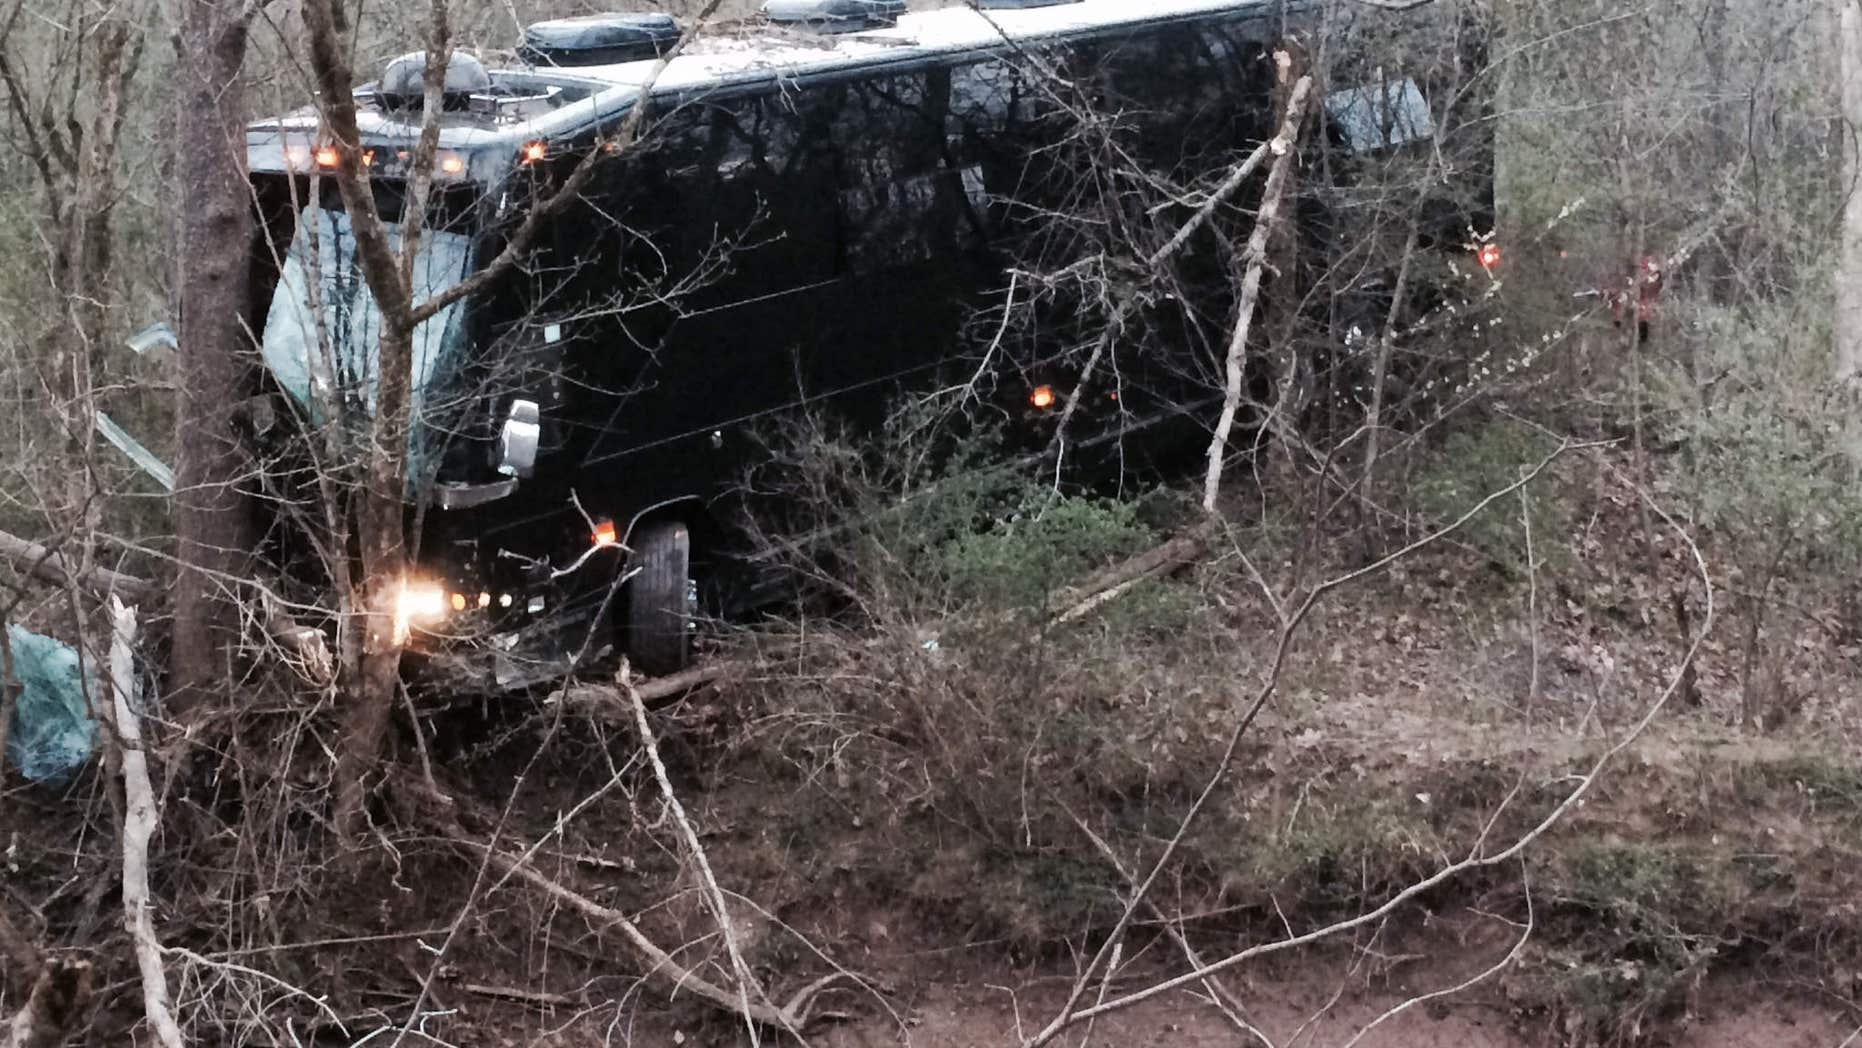 A tour bus for musician Gregg Allman's band rests against a tree near a creek after veering off Interstate 77 Wednesday morning, April 6, 2016, near Goldtown, W.Va.